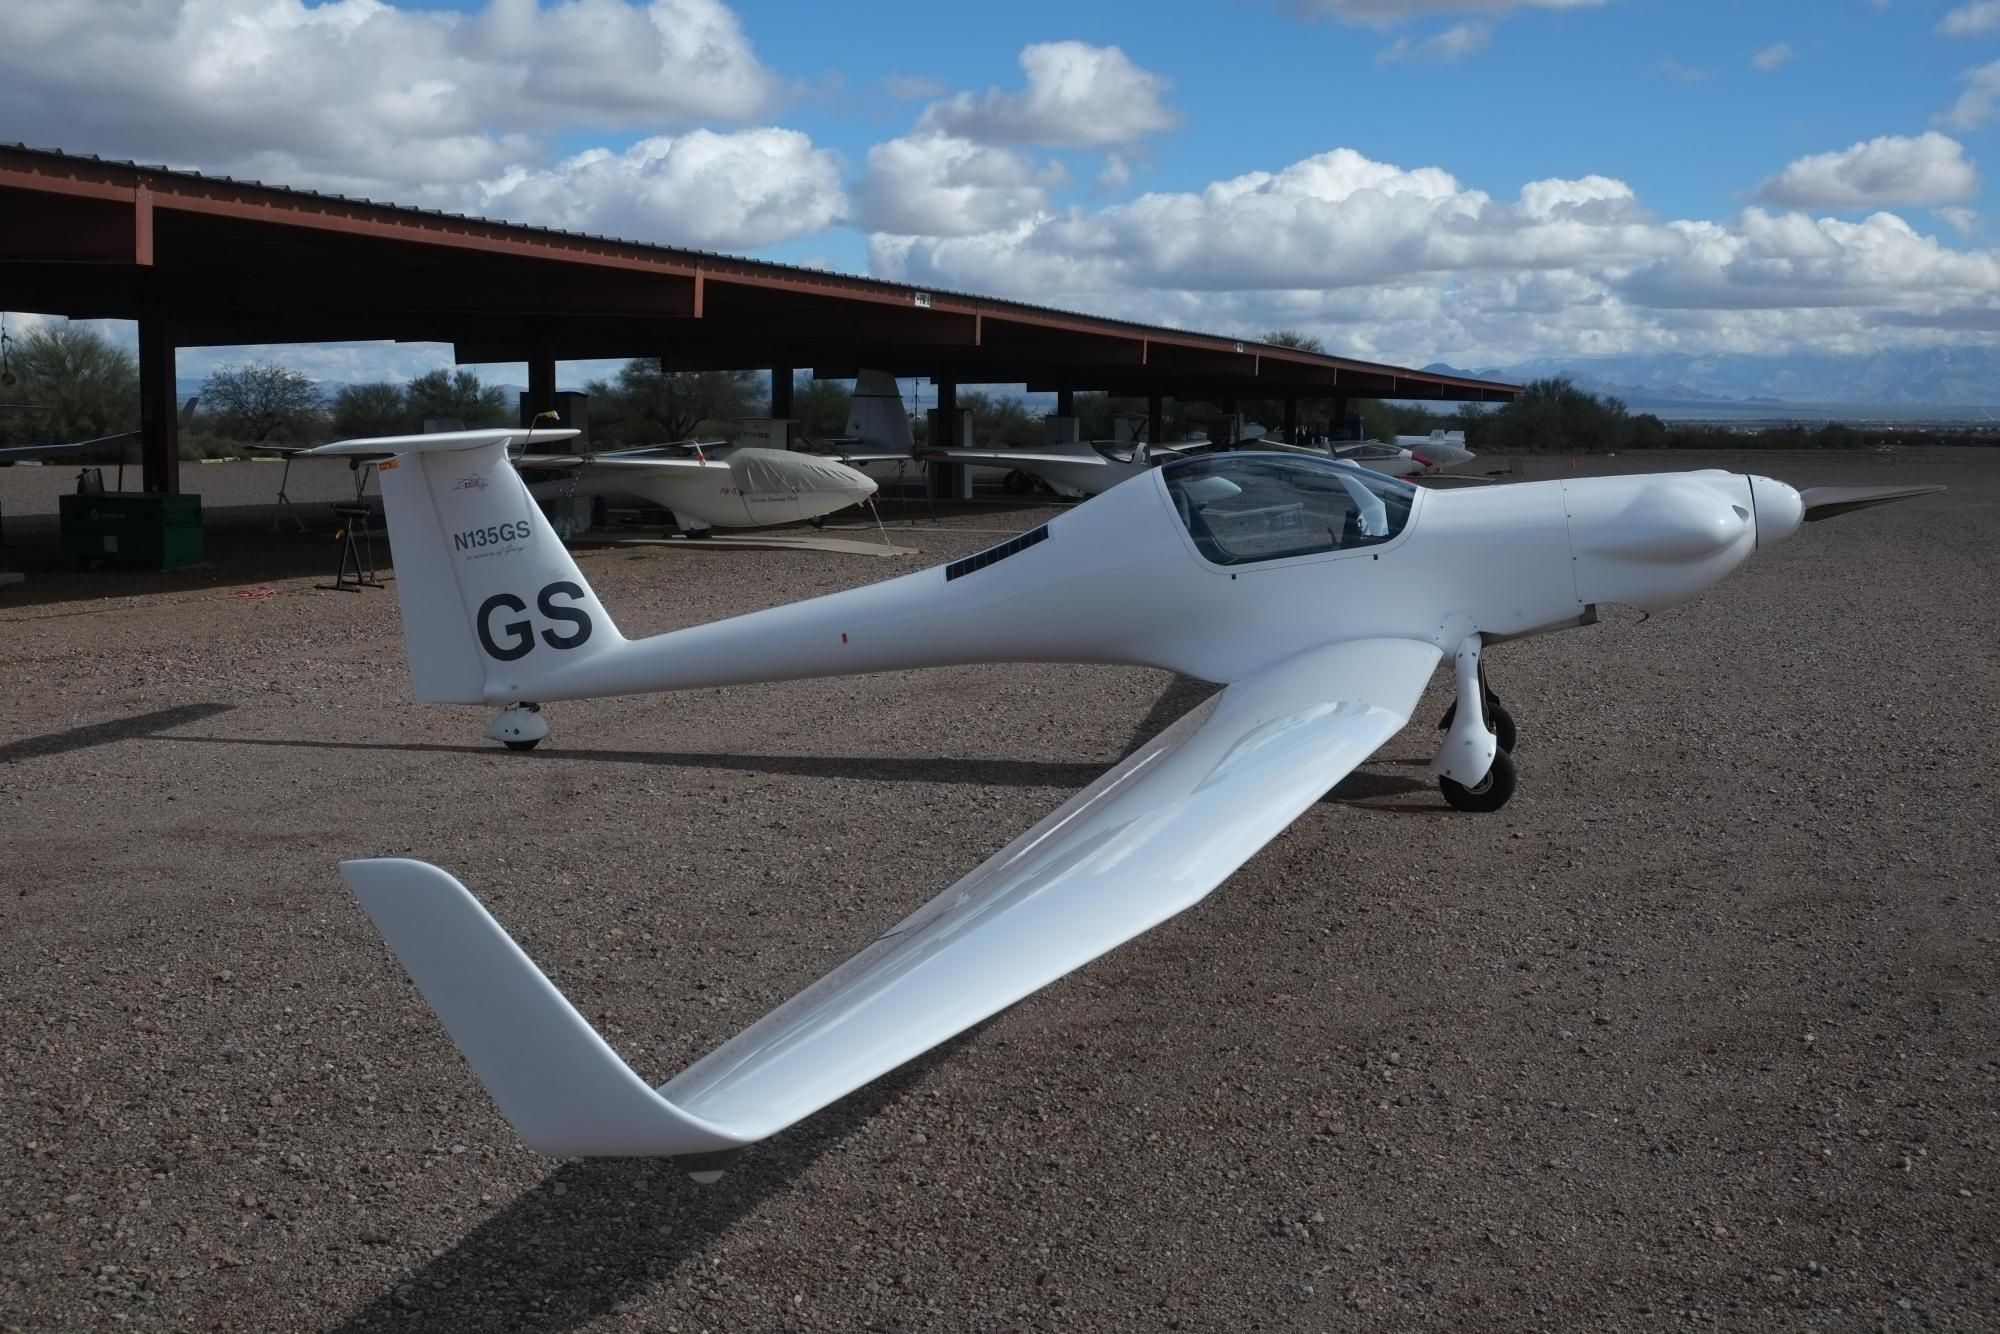 2005 Carat N135GS - Used Motorgldiers - Touring Motor Gliders